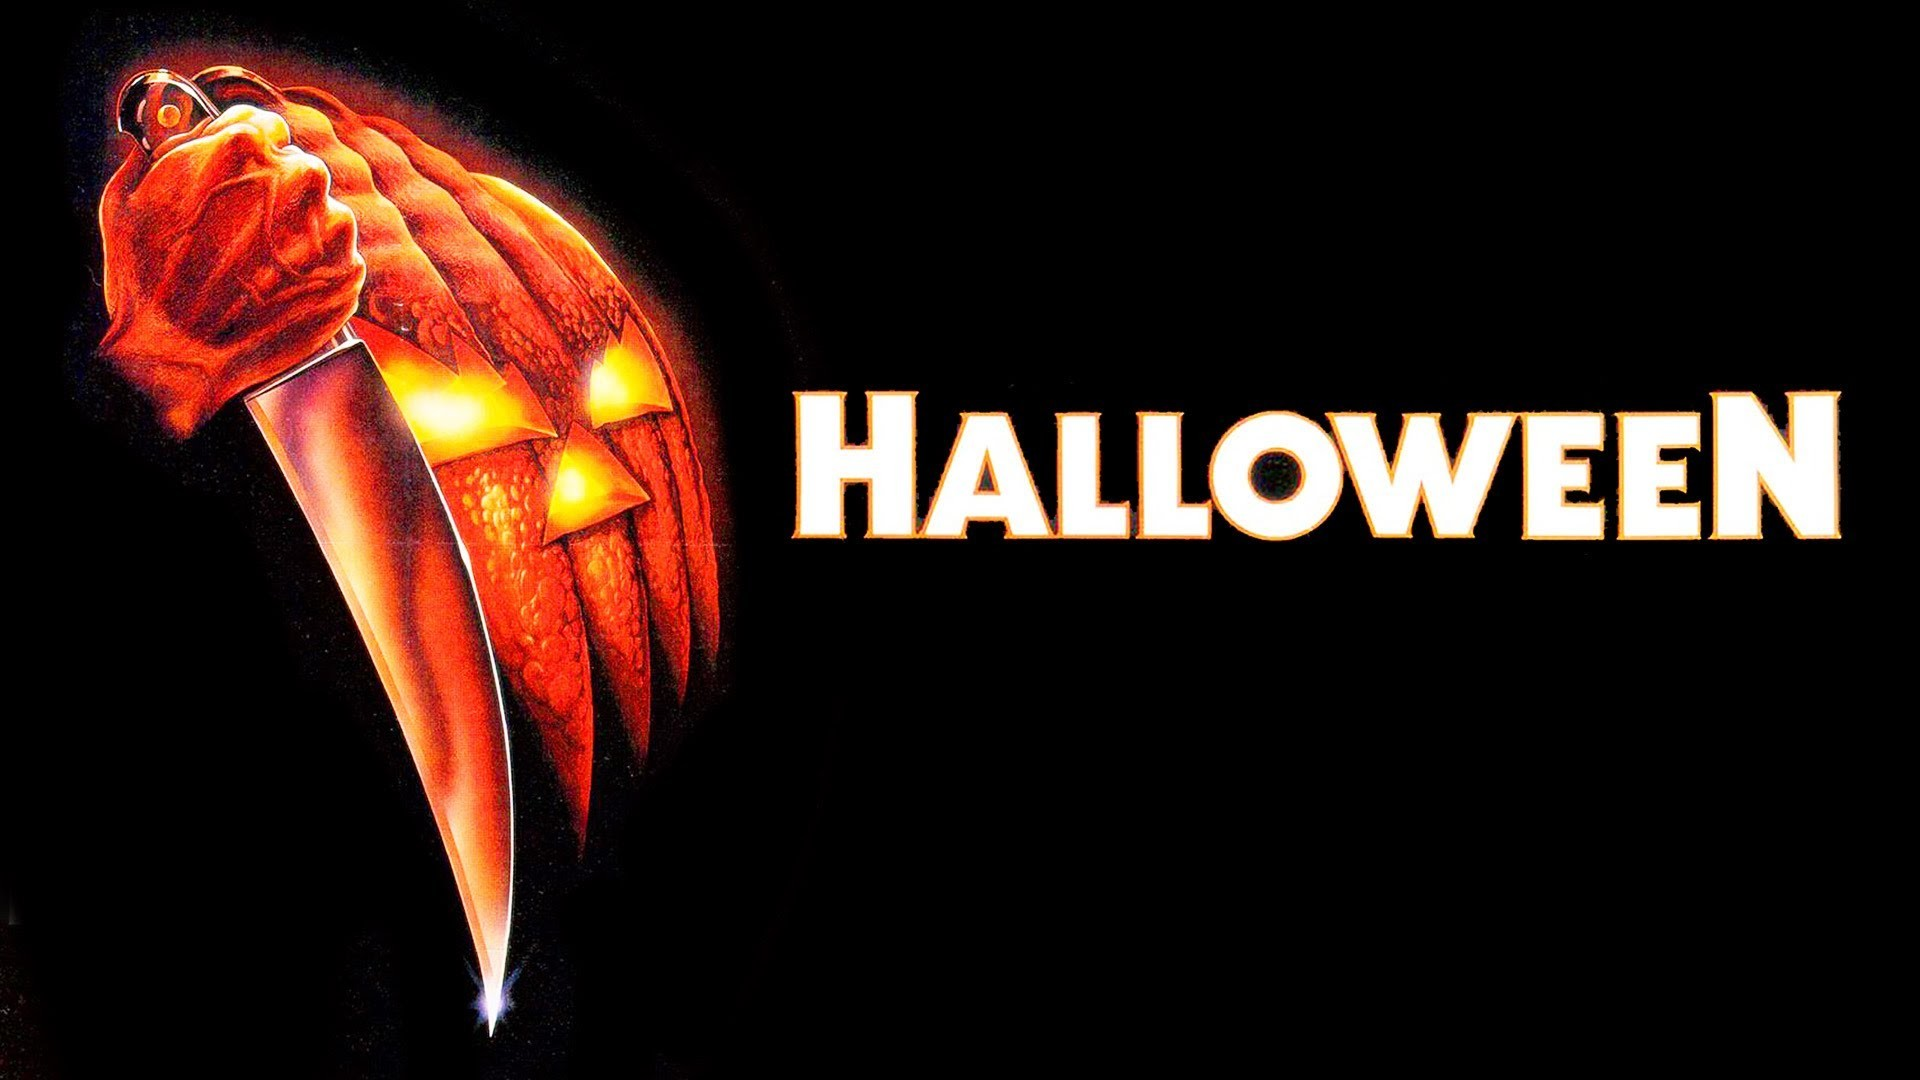 Halloween Movie Wallpaper Backgrounds (55+ images)